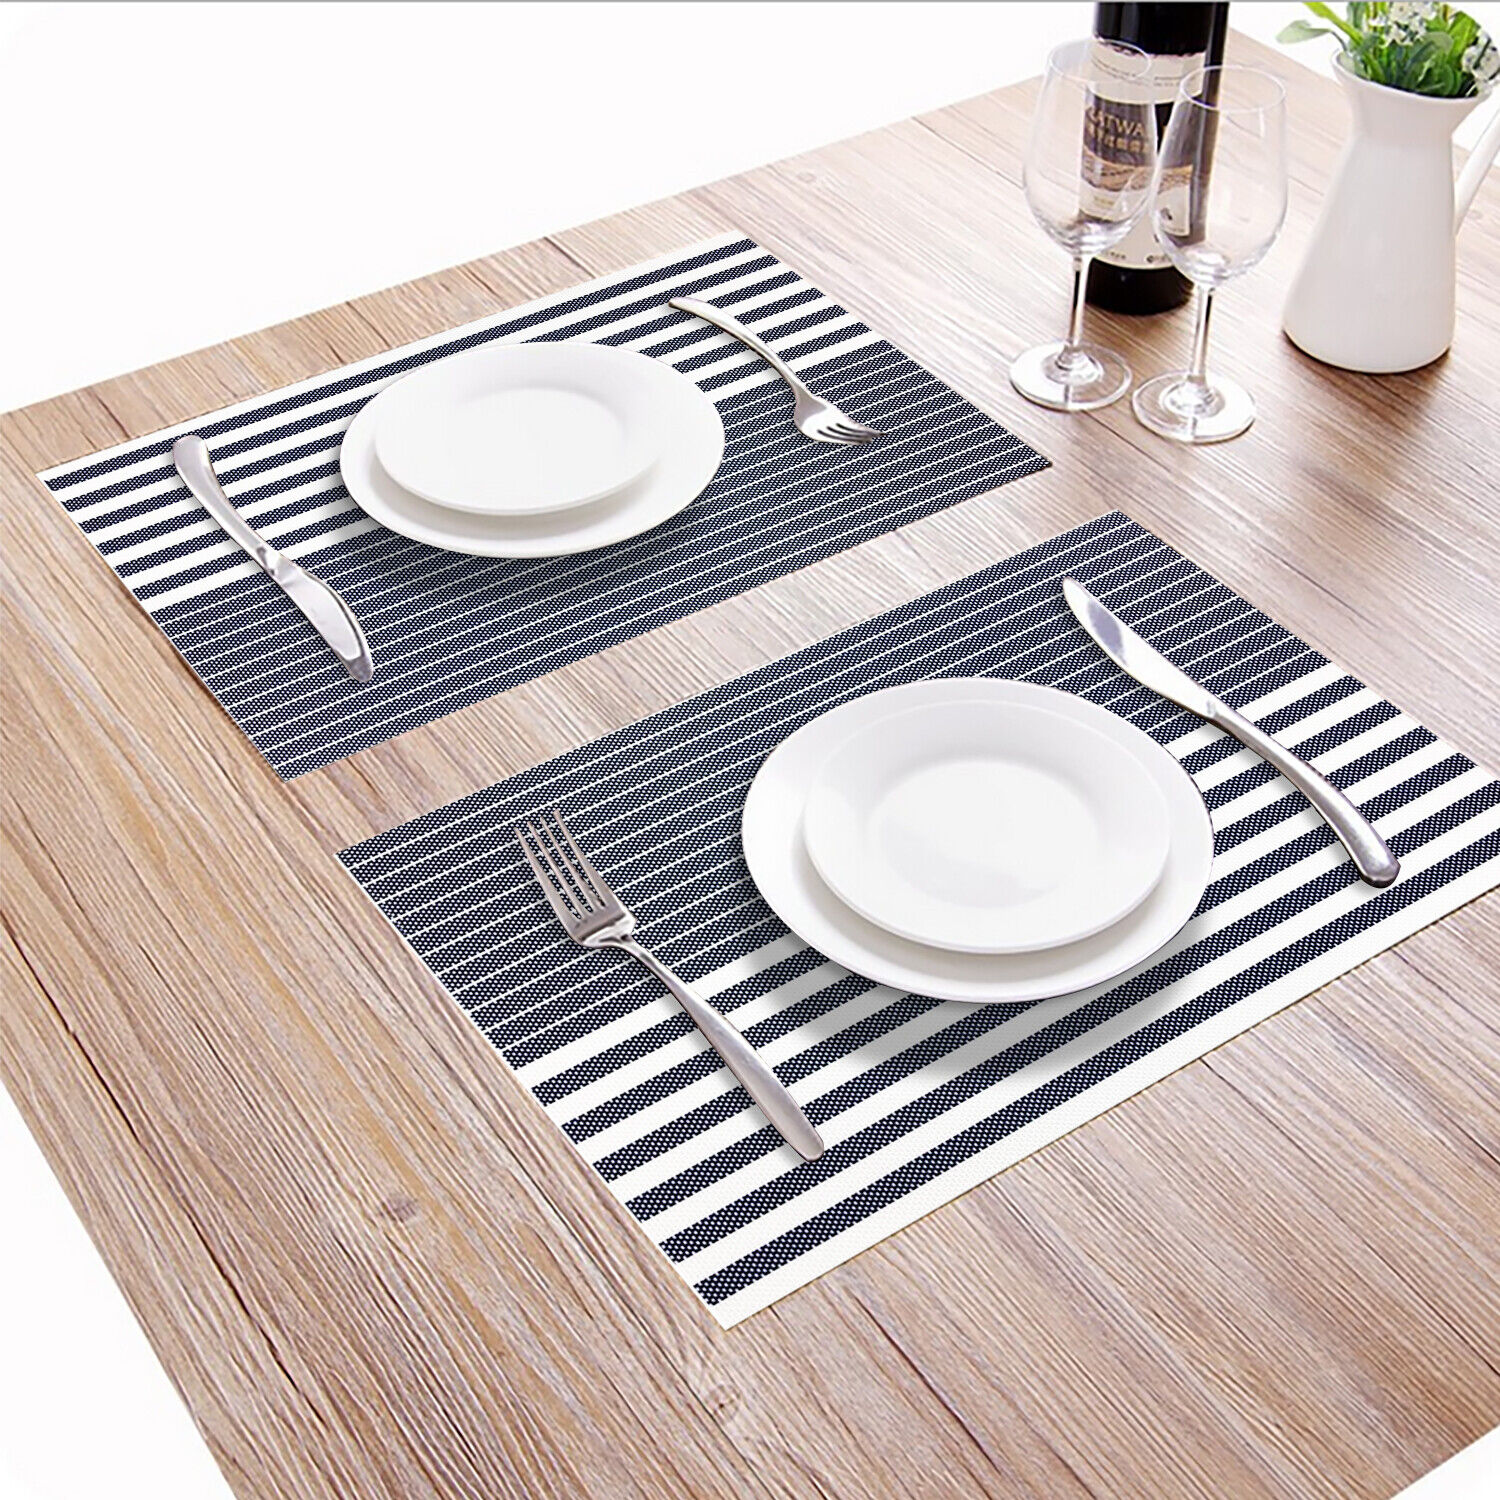 Placemats PVC Set of 6 Heat Resistant Washable DiningTable Mat Woven Blue Stripe